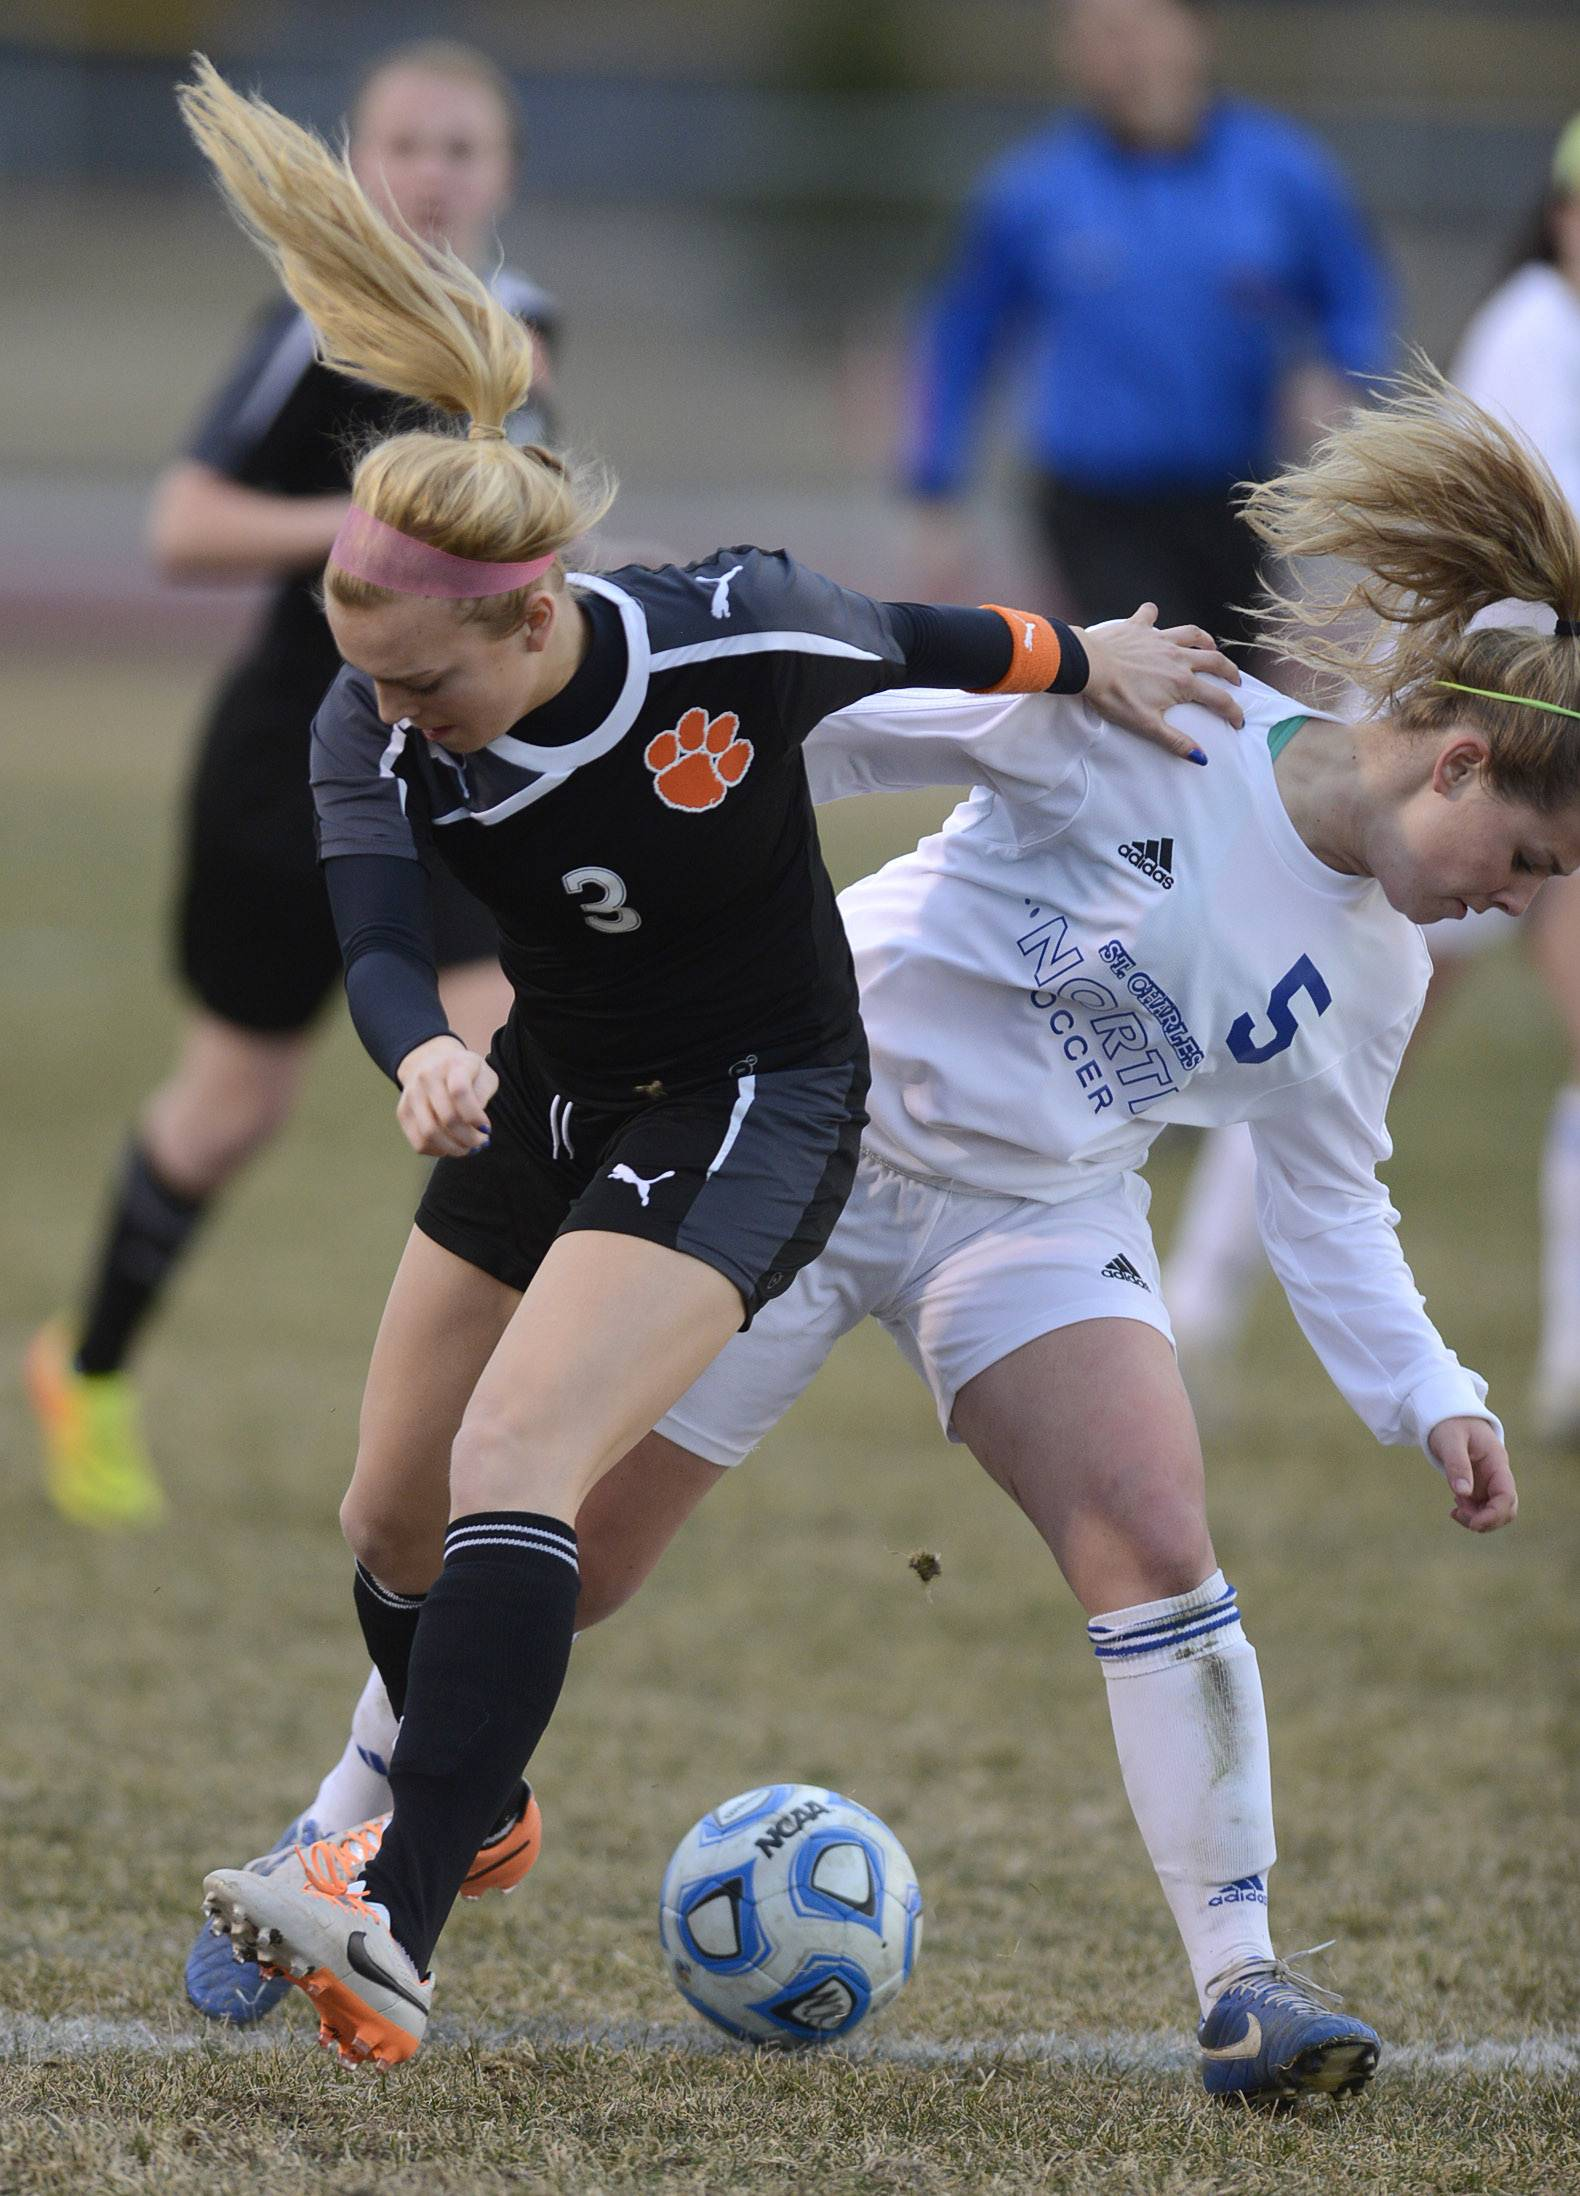 Wheaton Warrenville South's Ava Fickle, left, and St. Charles North's Hanna Durocher battle for the ball in the first half on Thursday, April 10.